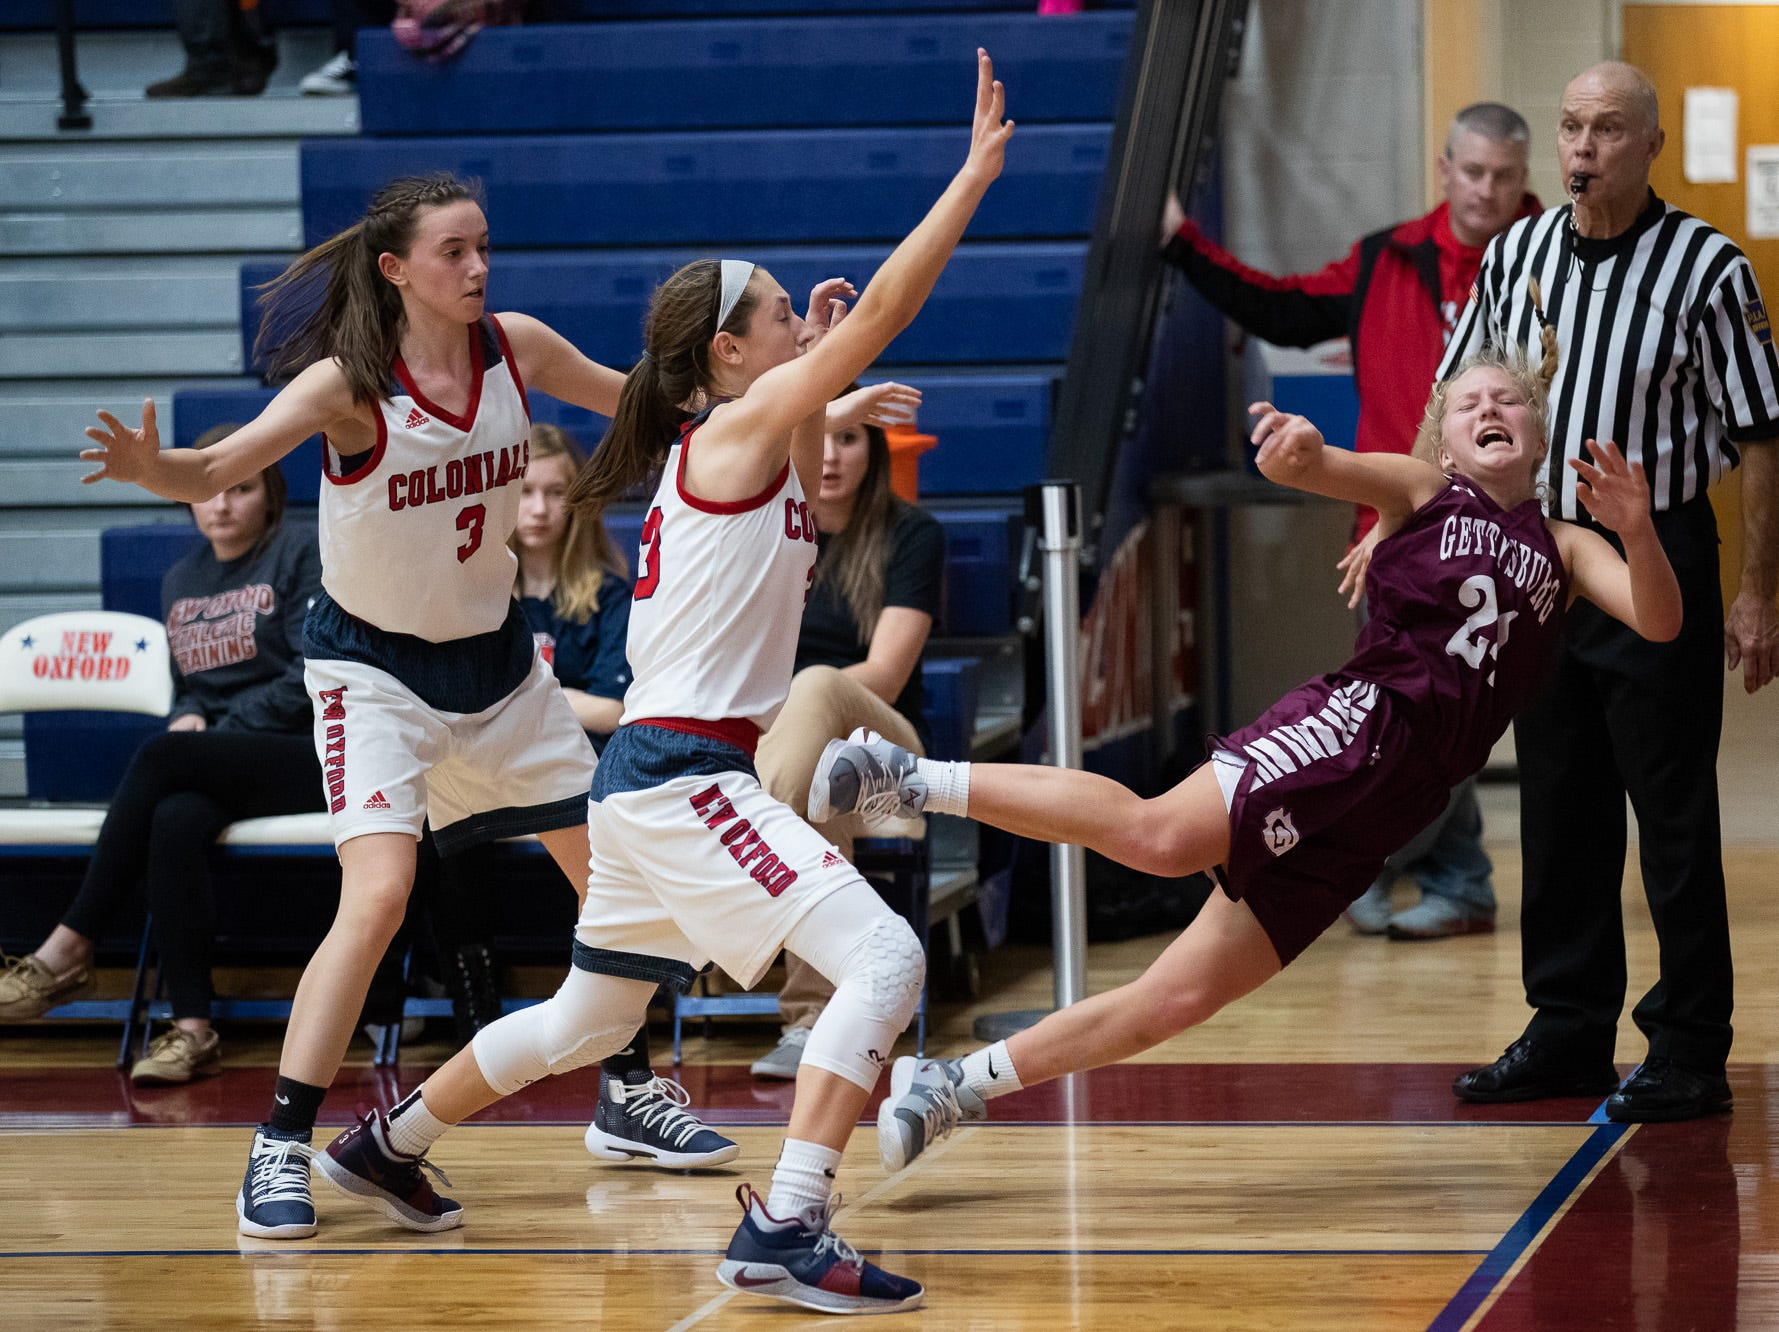 A Gettysburg player falls after throwing the ball during the championship game between New Oxford and Gettysburg at the New Oxford Girls Basketball Tip-Off Tournament, Saturday, Dec. 8, 2018, in New Oxford. The Gettysburg Lady Warriors defeated the New Oxford Lady Colonials 47-40.